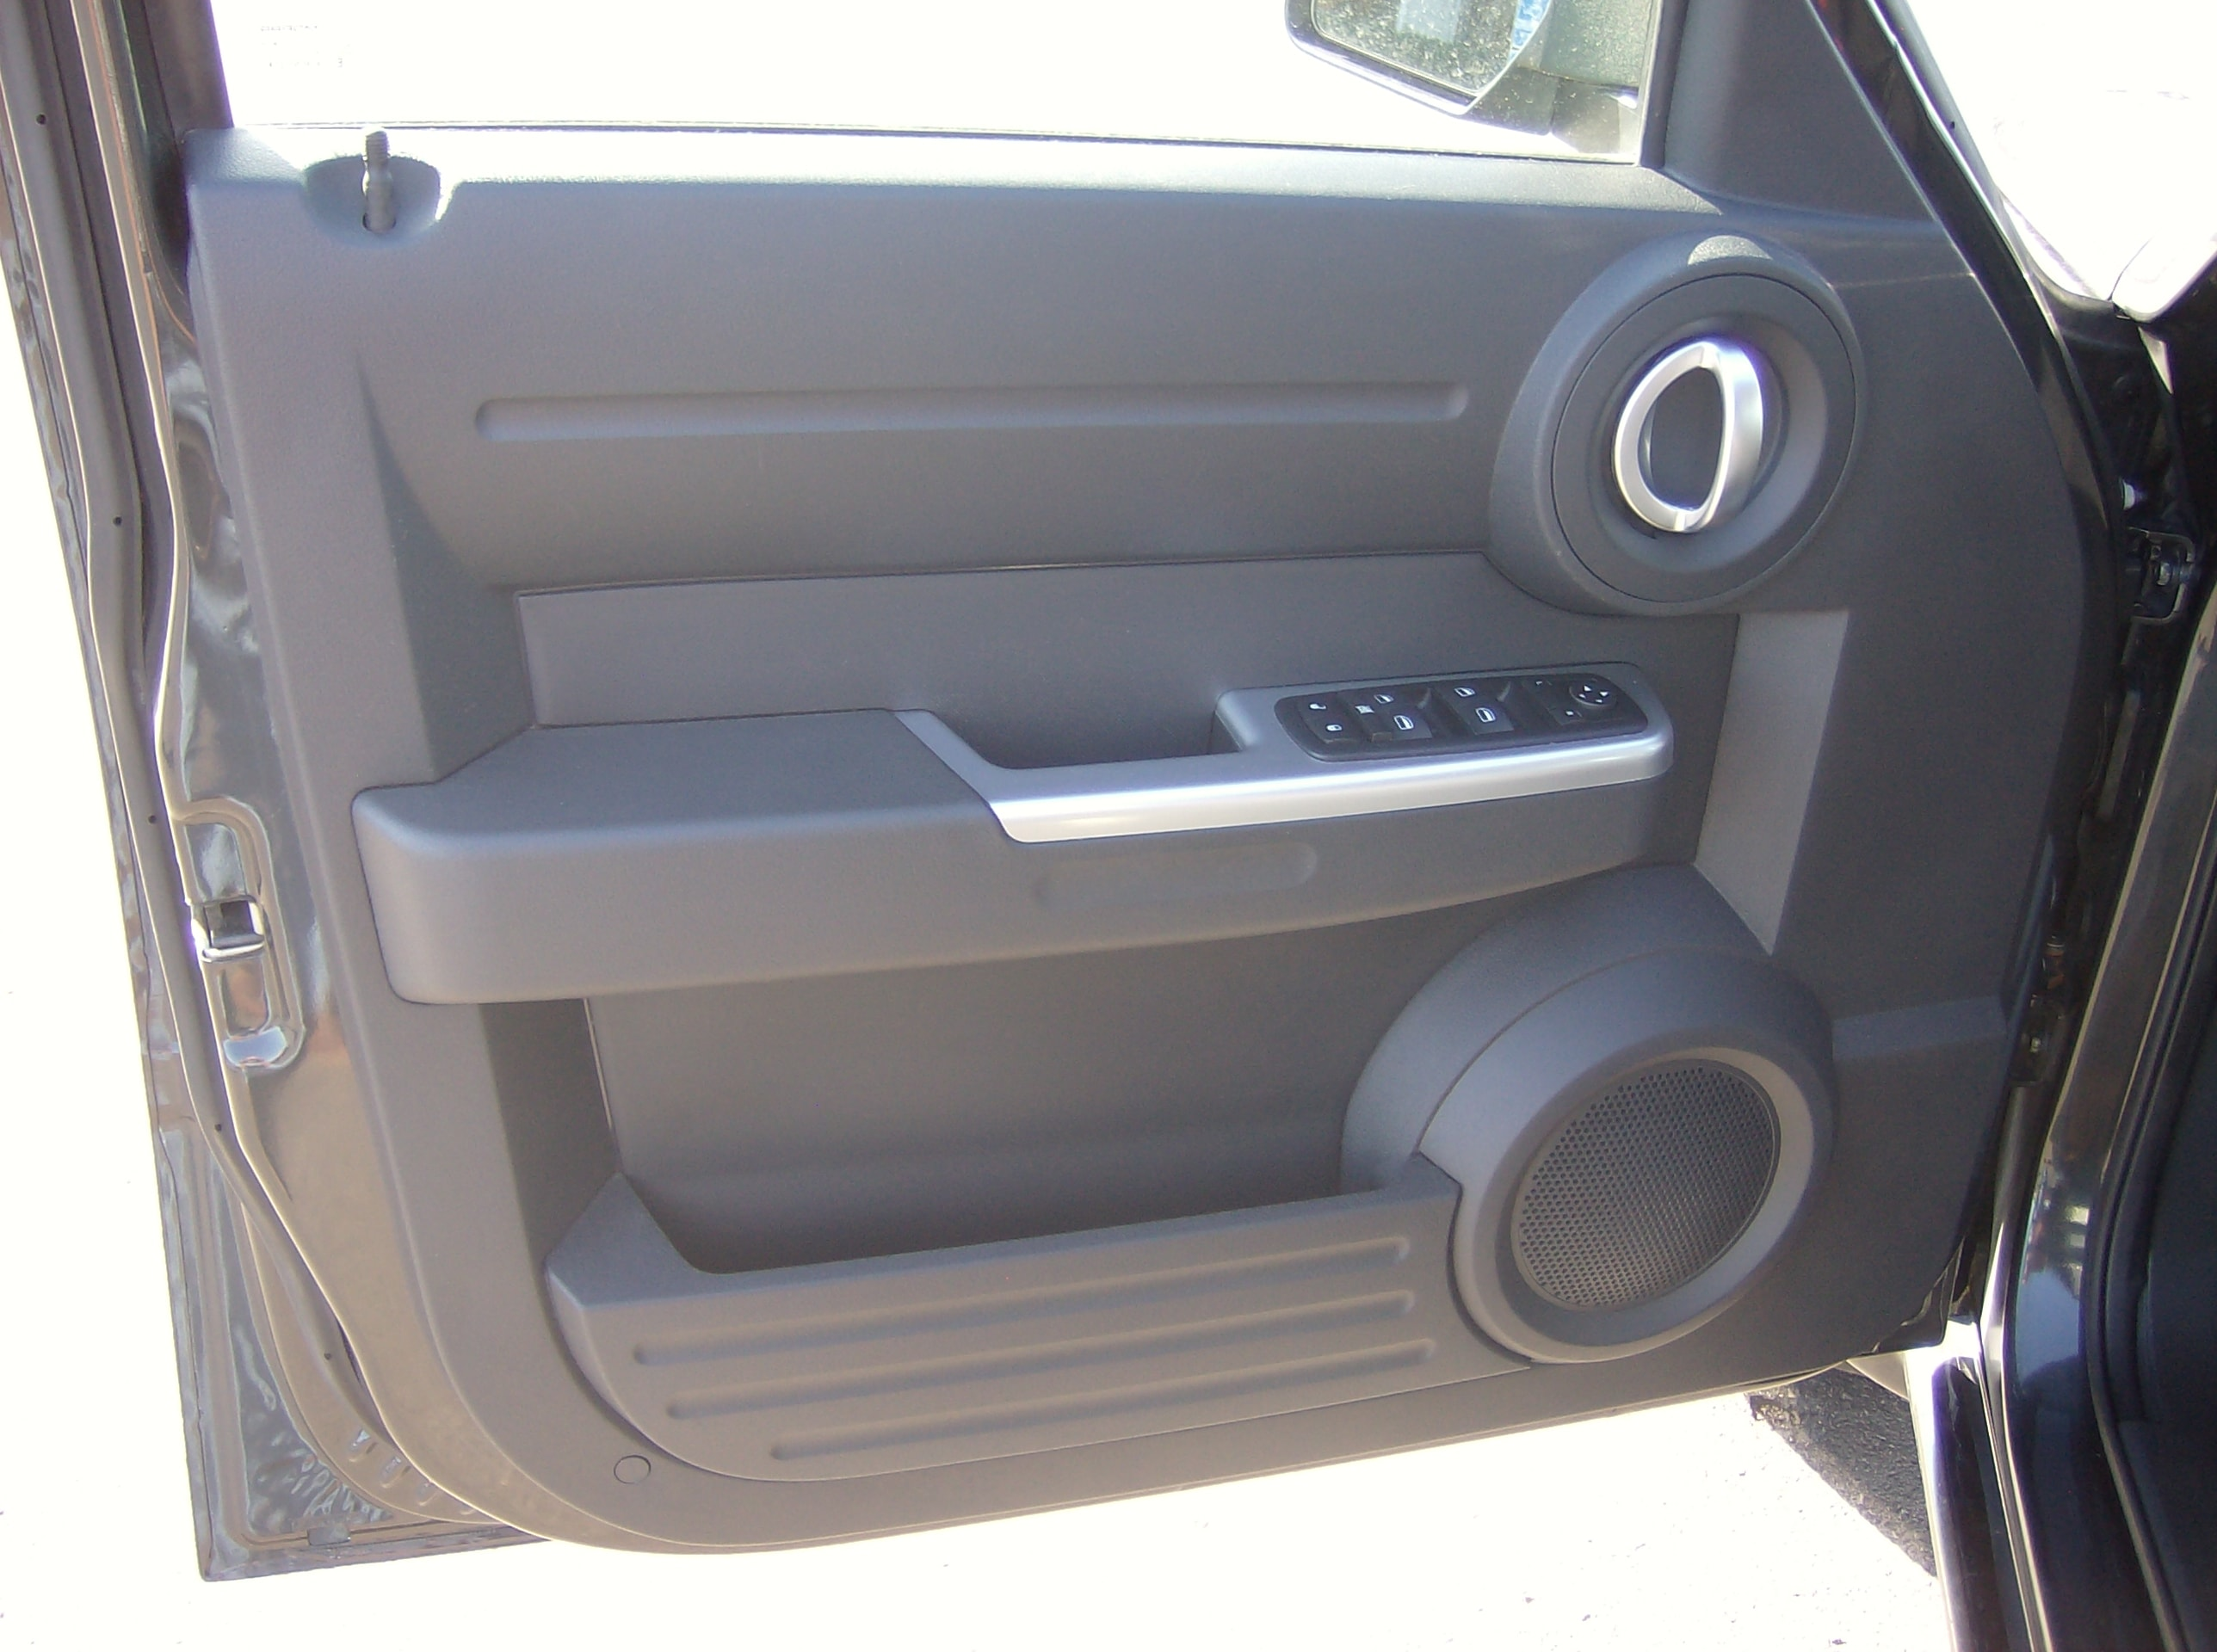 Used 2011 Dodge Nitro Sxt For Sale Maysville Ky